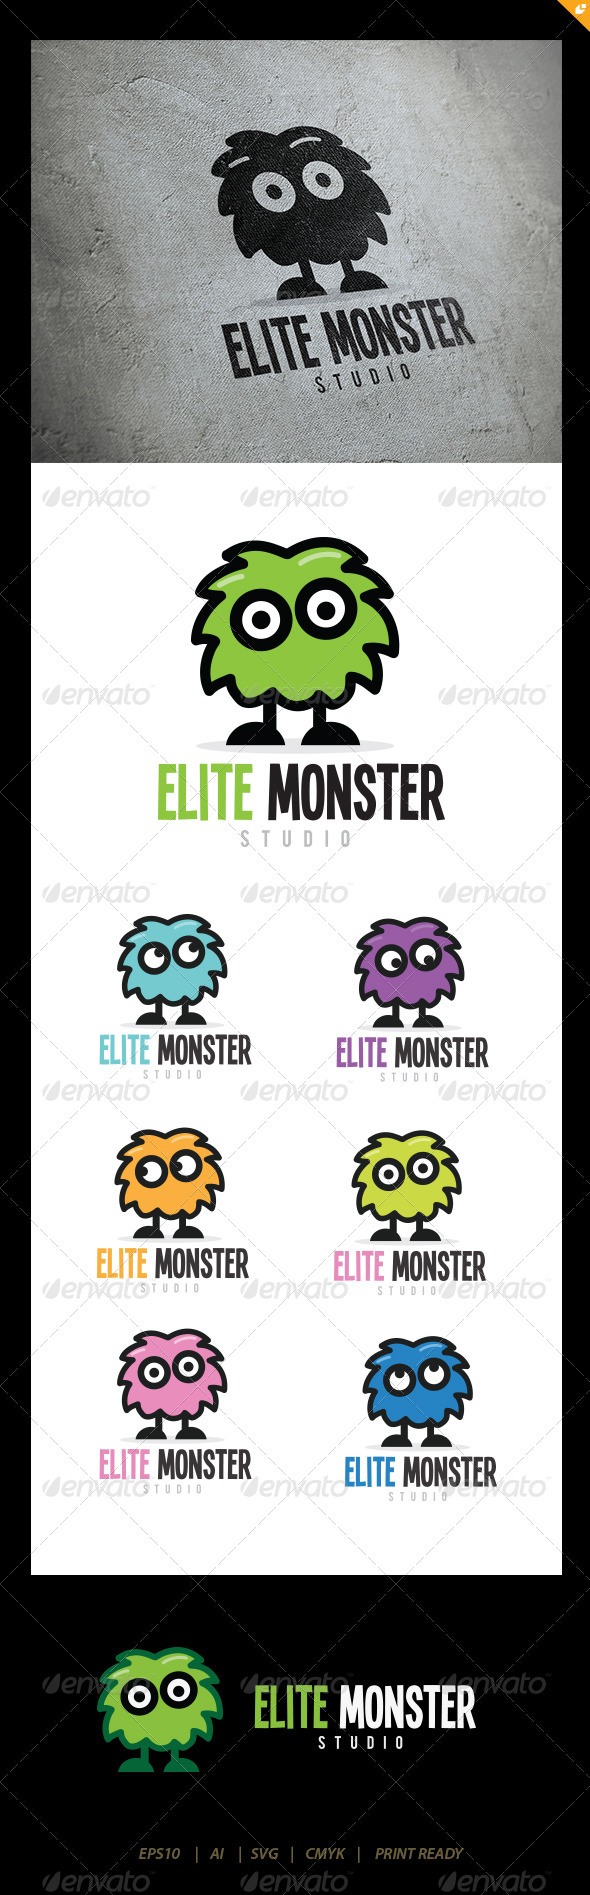 Elite Monster Logo